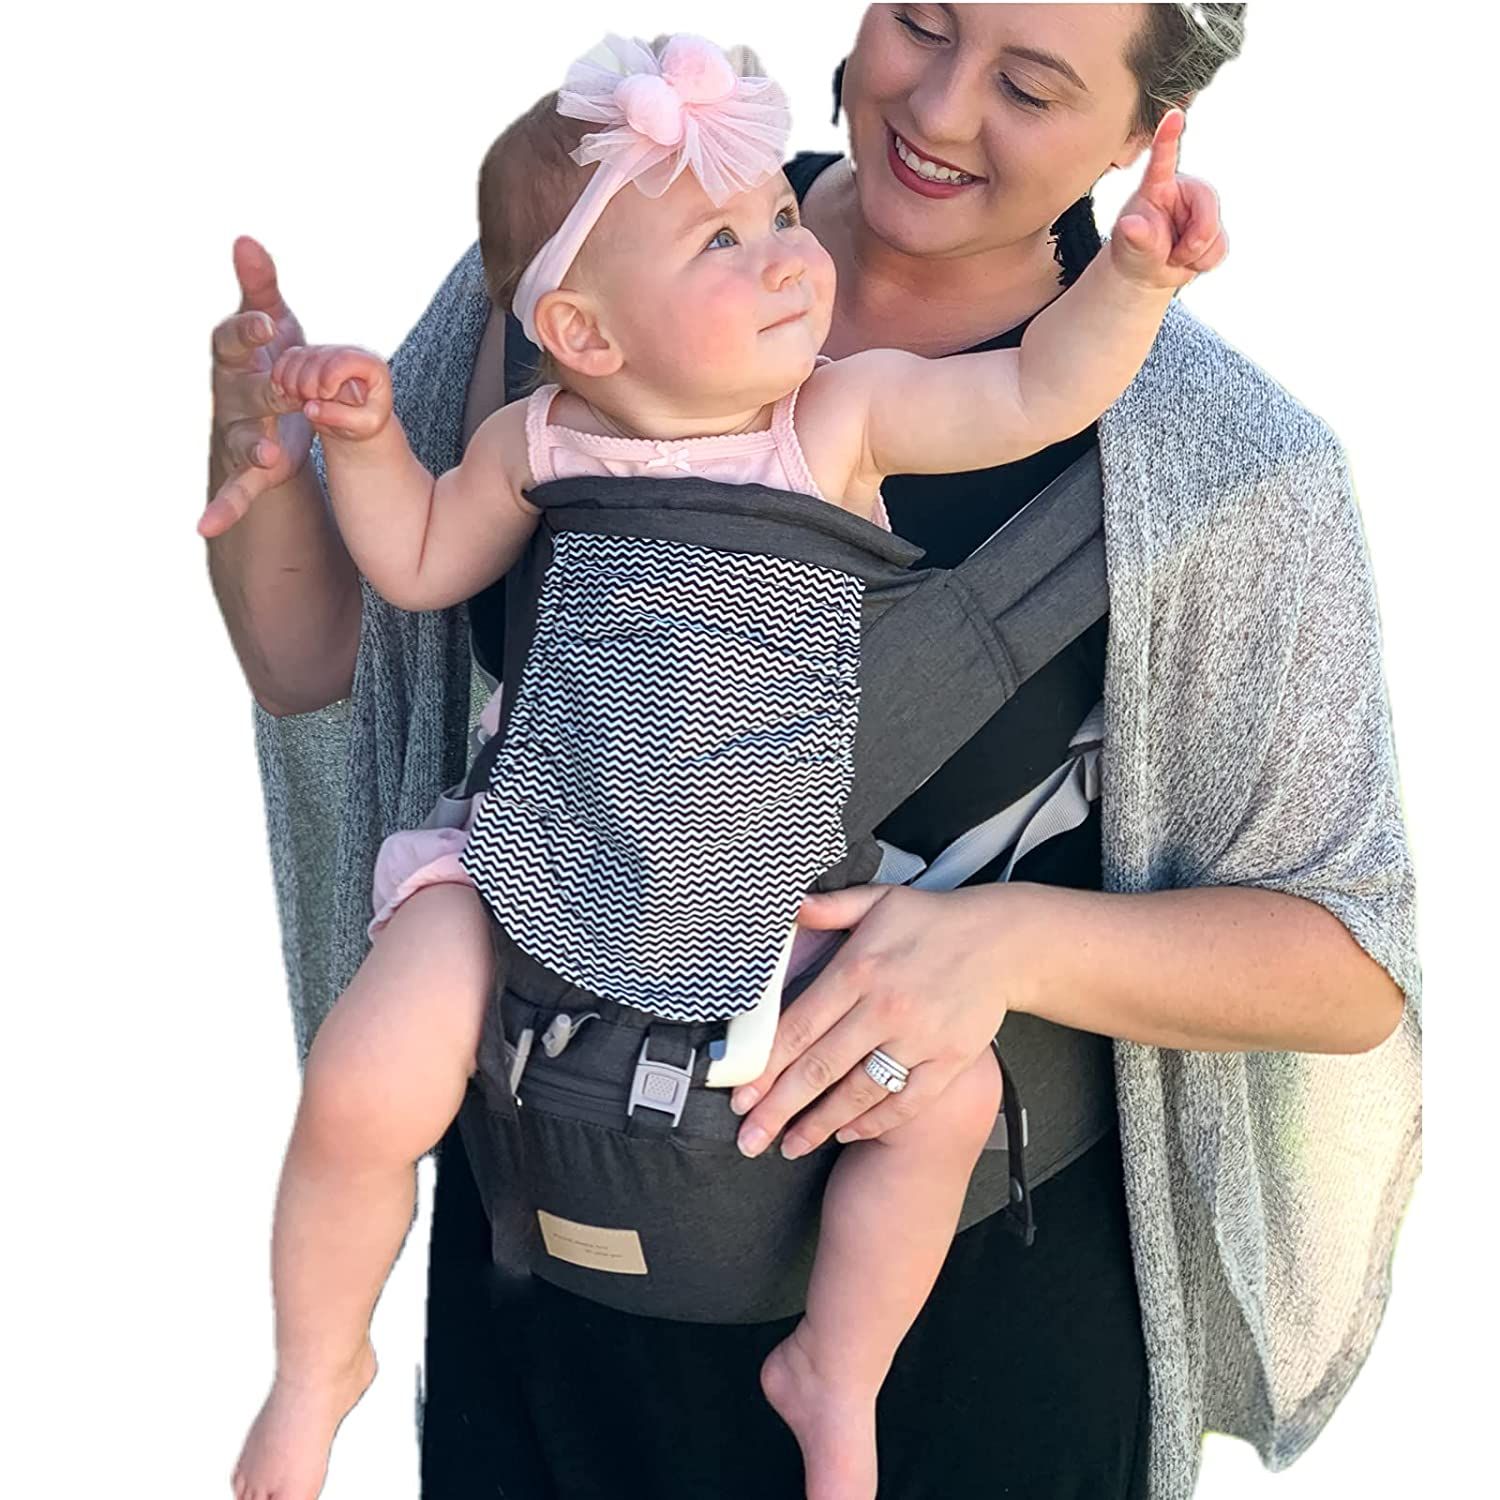 Baby Carrier Newborn to Toddler, GREJOUR Baby Carrier with Hip Seat for 4-36 Months Infant (8-33 lbs), Front and Back Carry for Hiking, Breathable Air Mesh Baby Kangaroo Carrier, Dark Grey